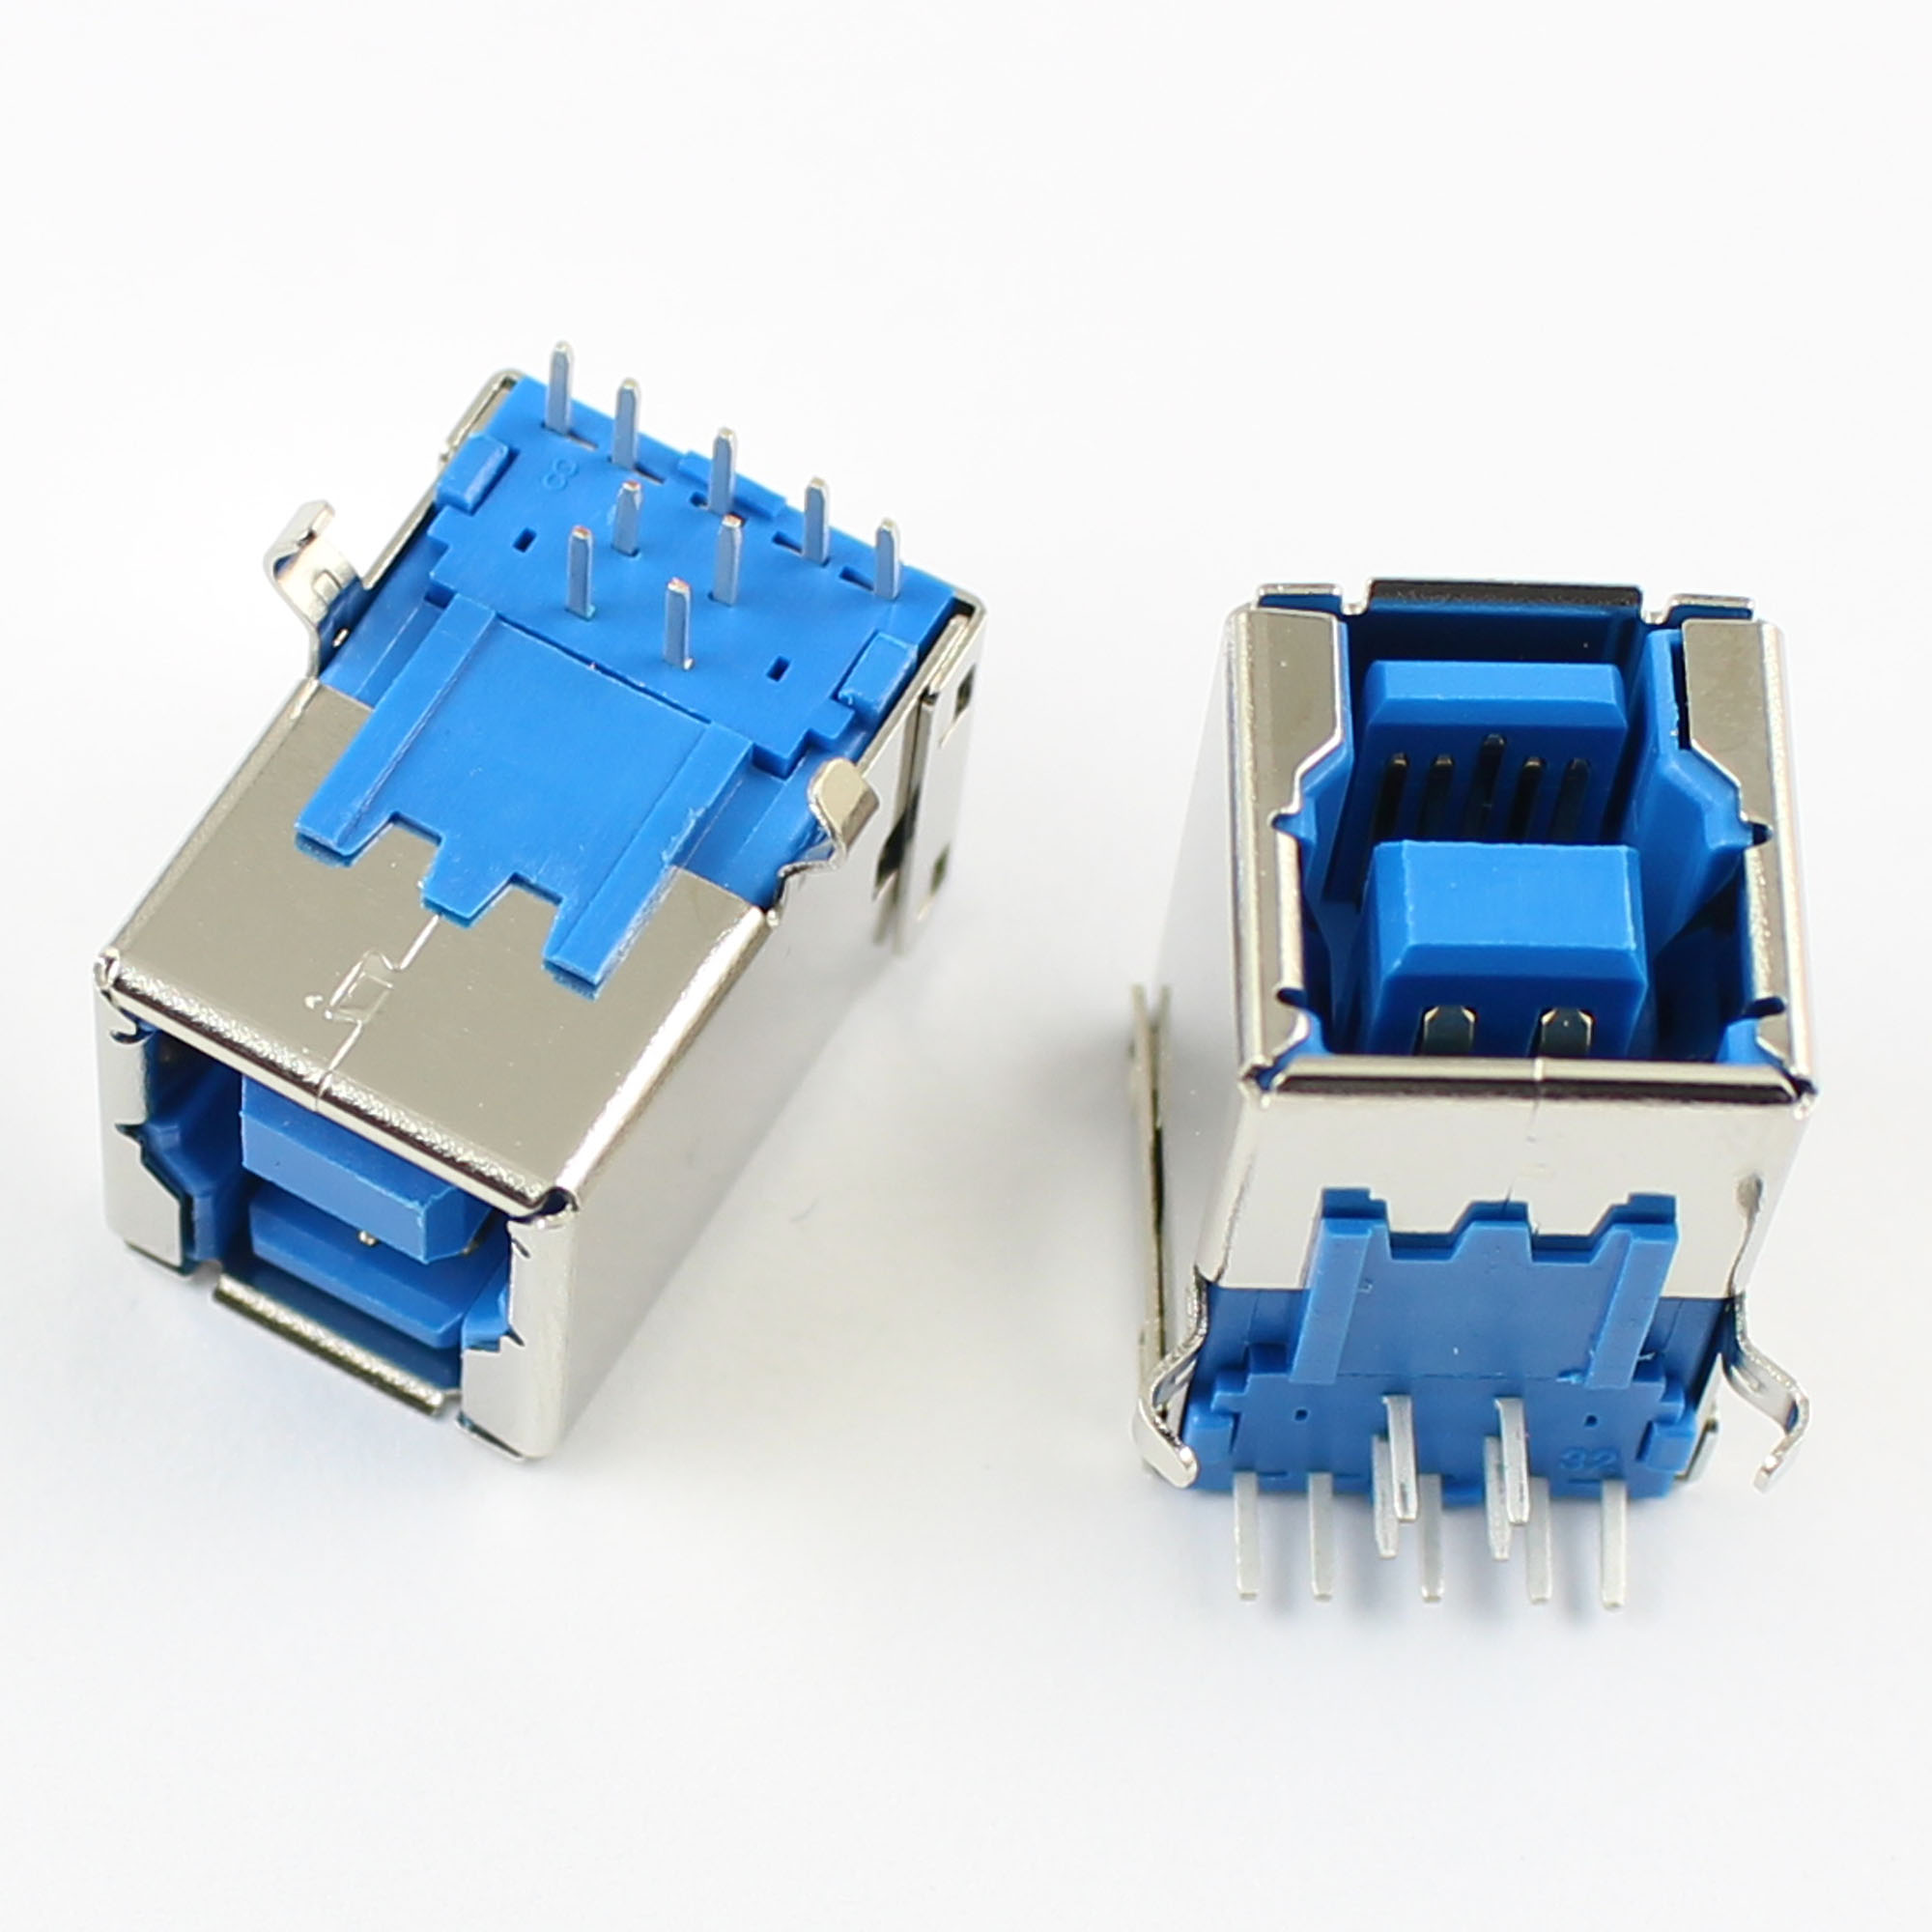 5pcs usb 3 0 female b type 9 pin dip right angle pcb connector for printer port ebay. Black Bedroom Furniture Sets. Home Design Ideas